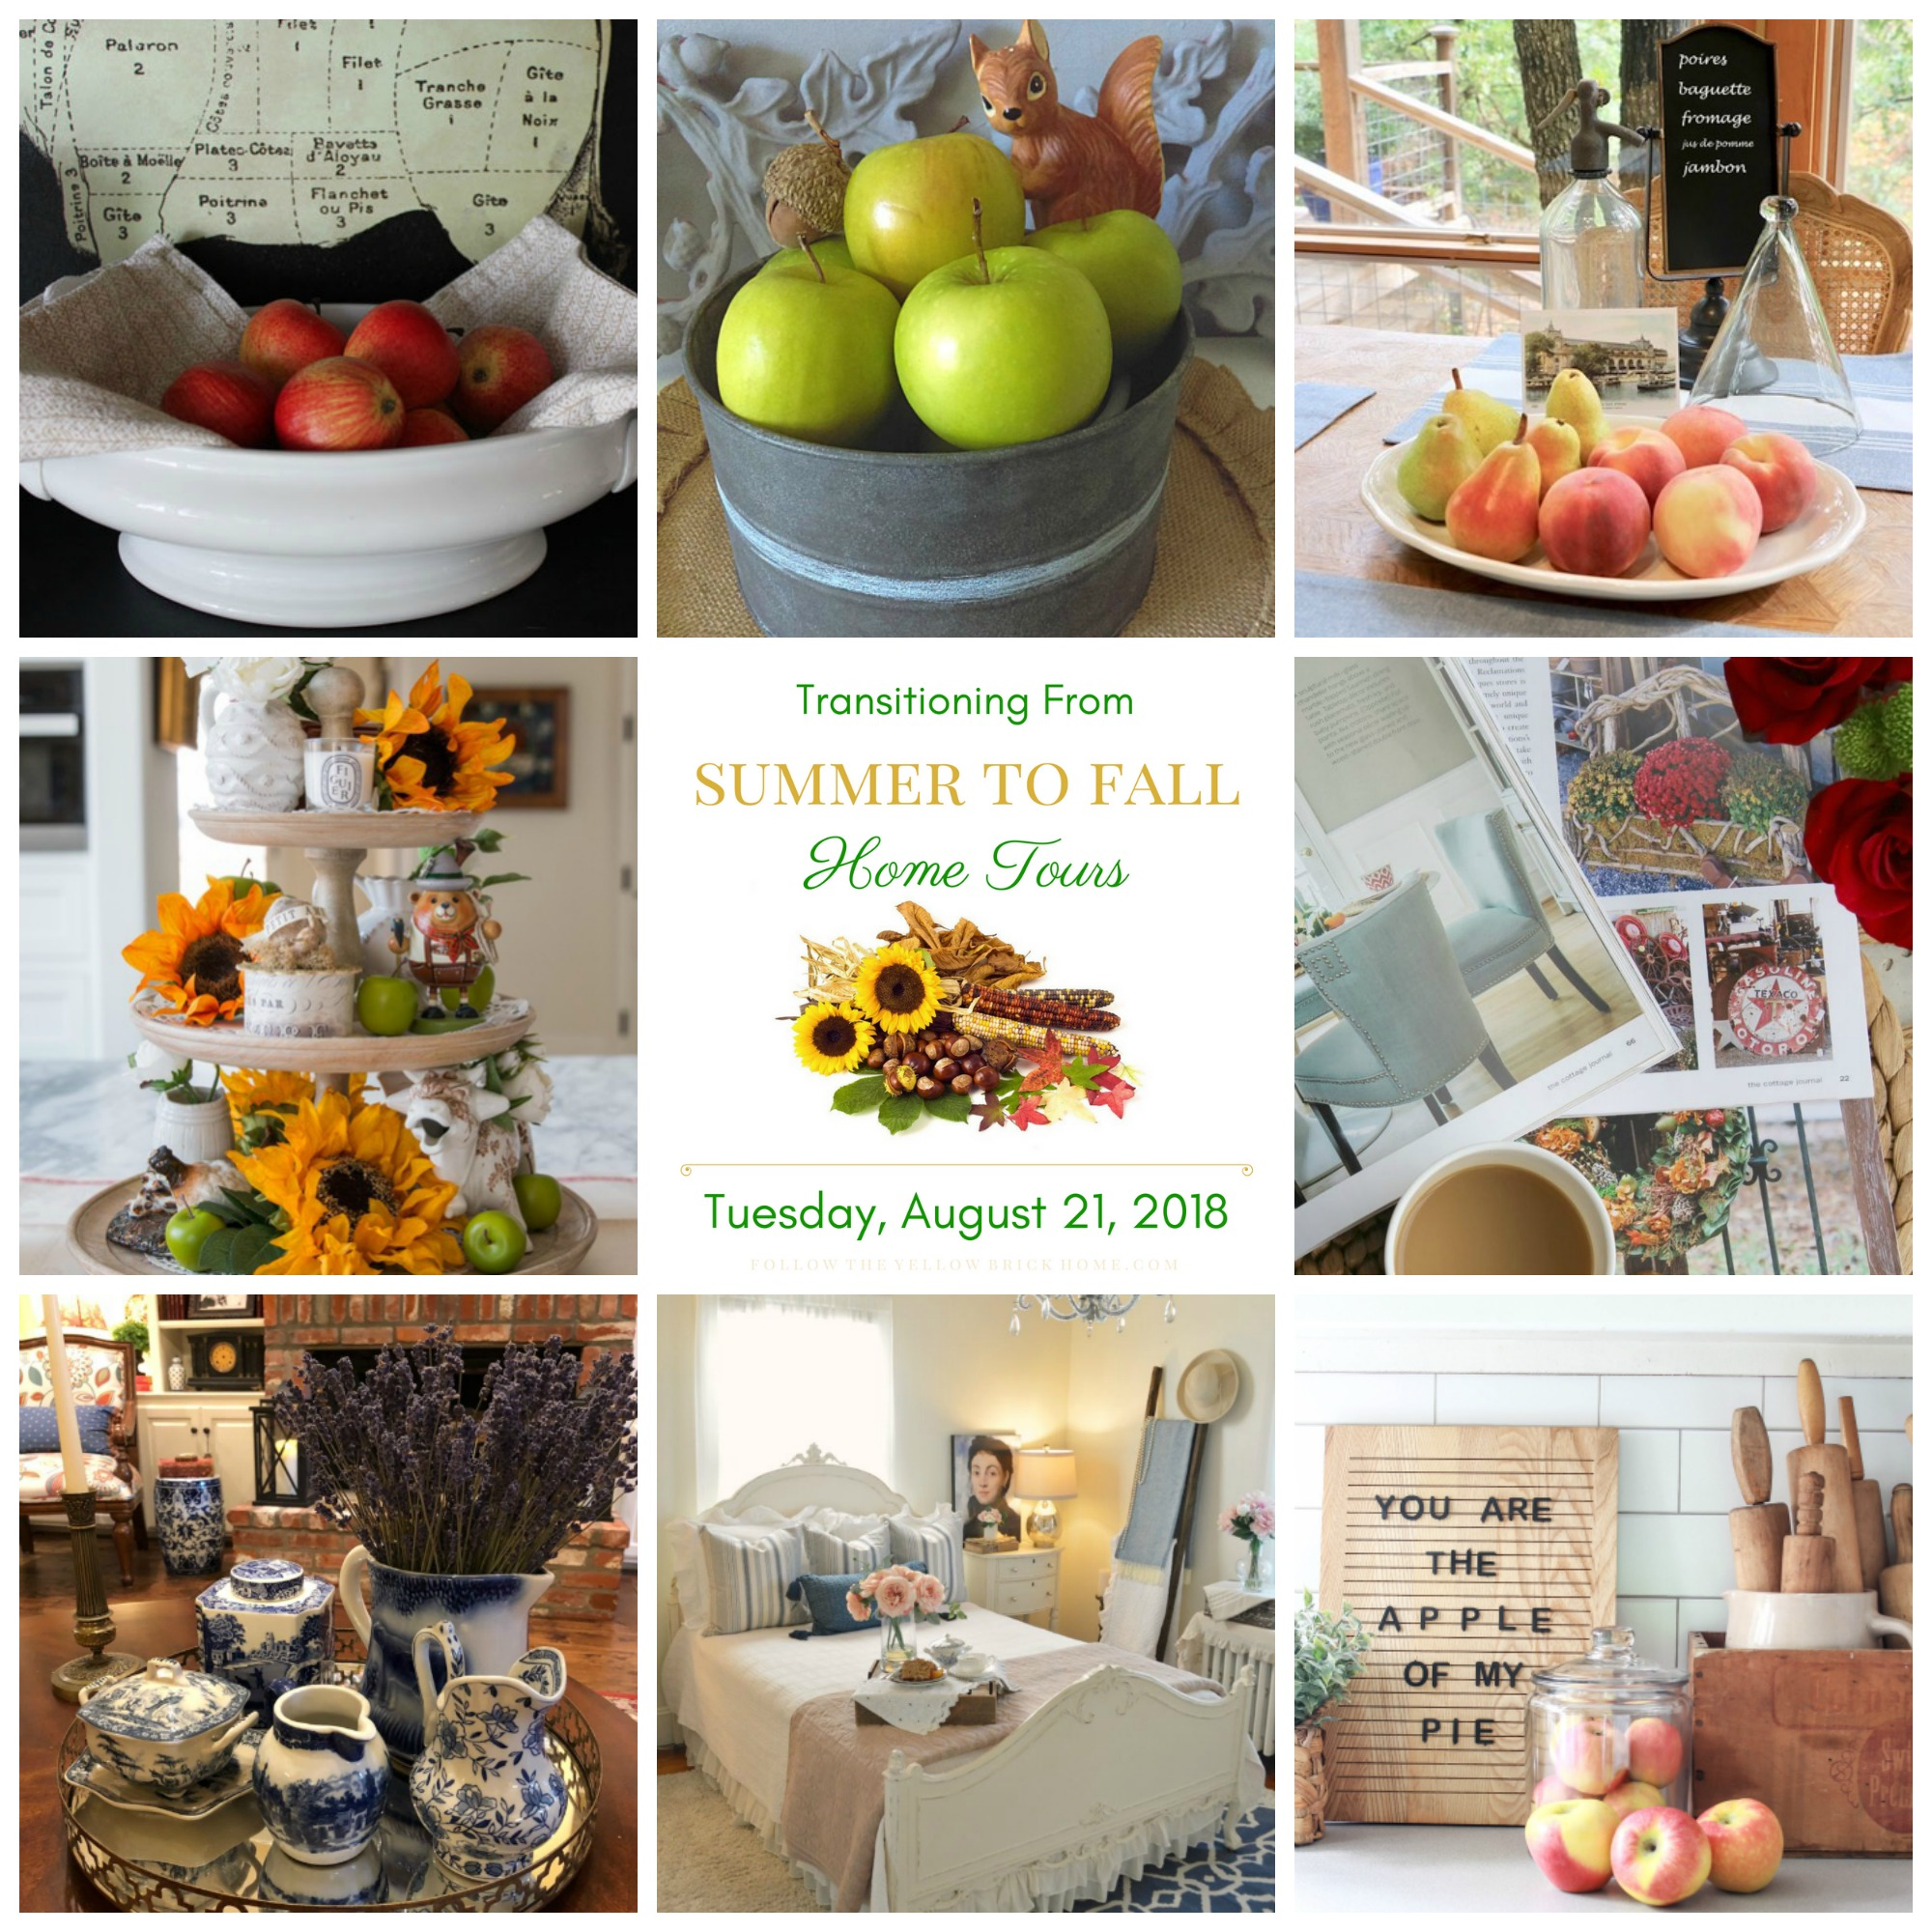 Transition your home from summer to fall decor with these 5 easy steps. These are easy and affordable ways to incorporate fall into your home.